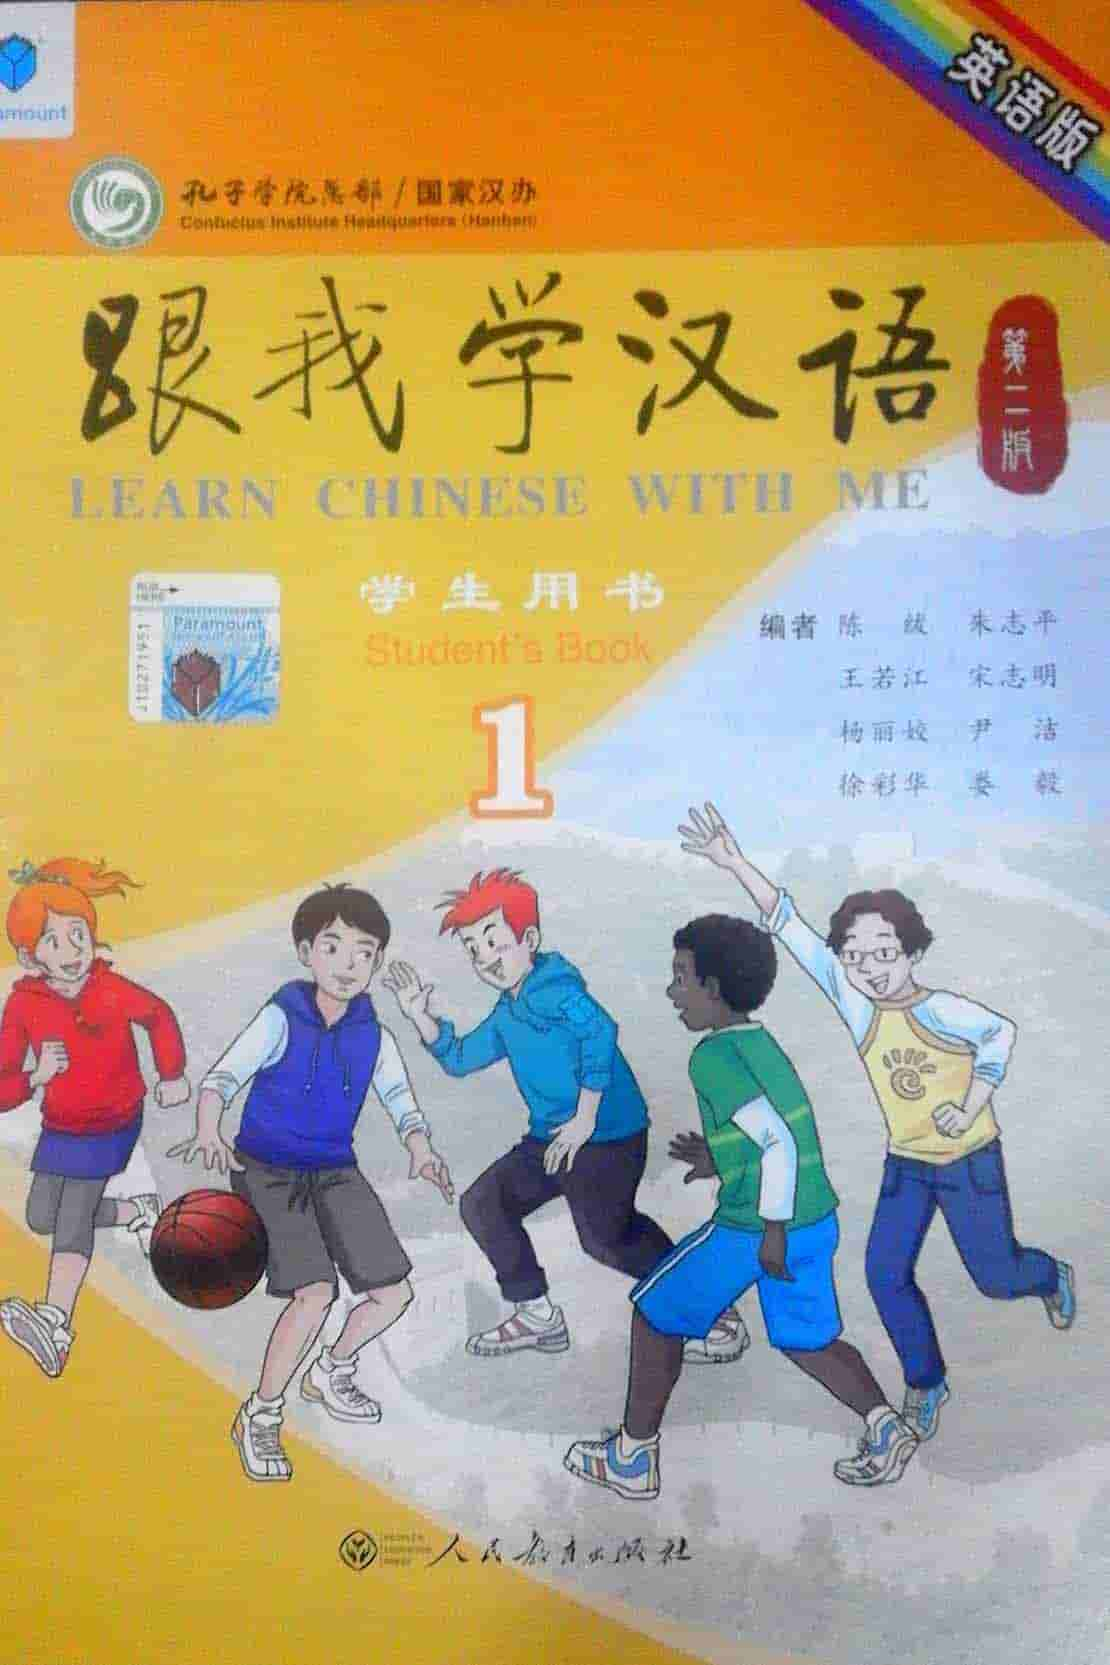 LEARN CHINESE WITH ME BOOK 1 Class 4